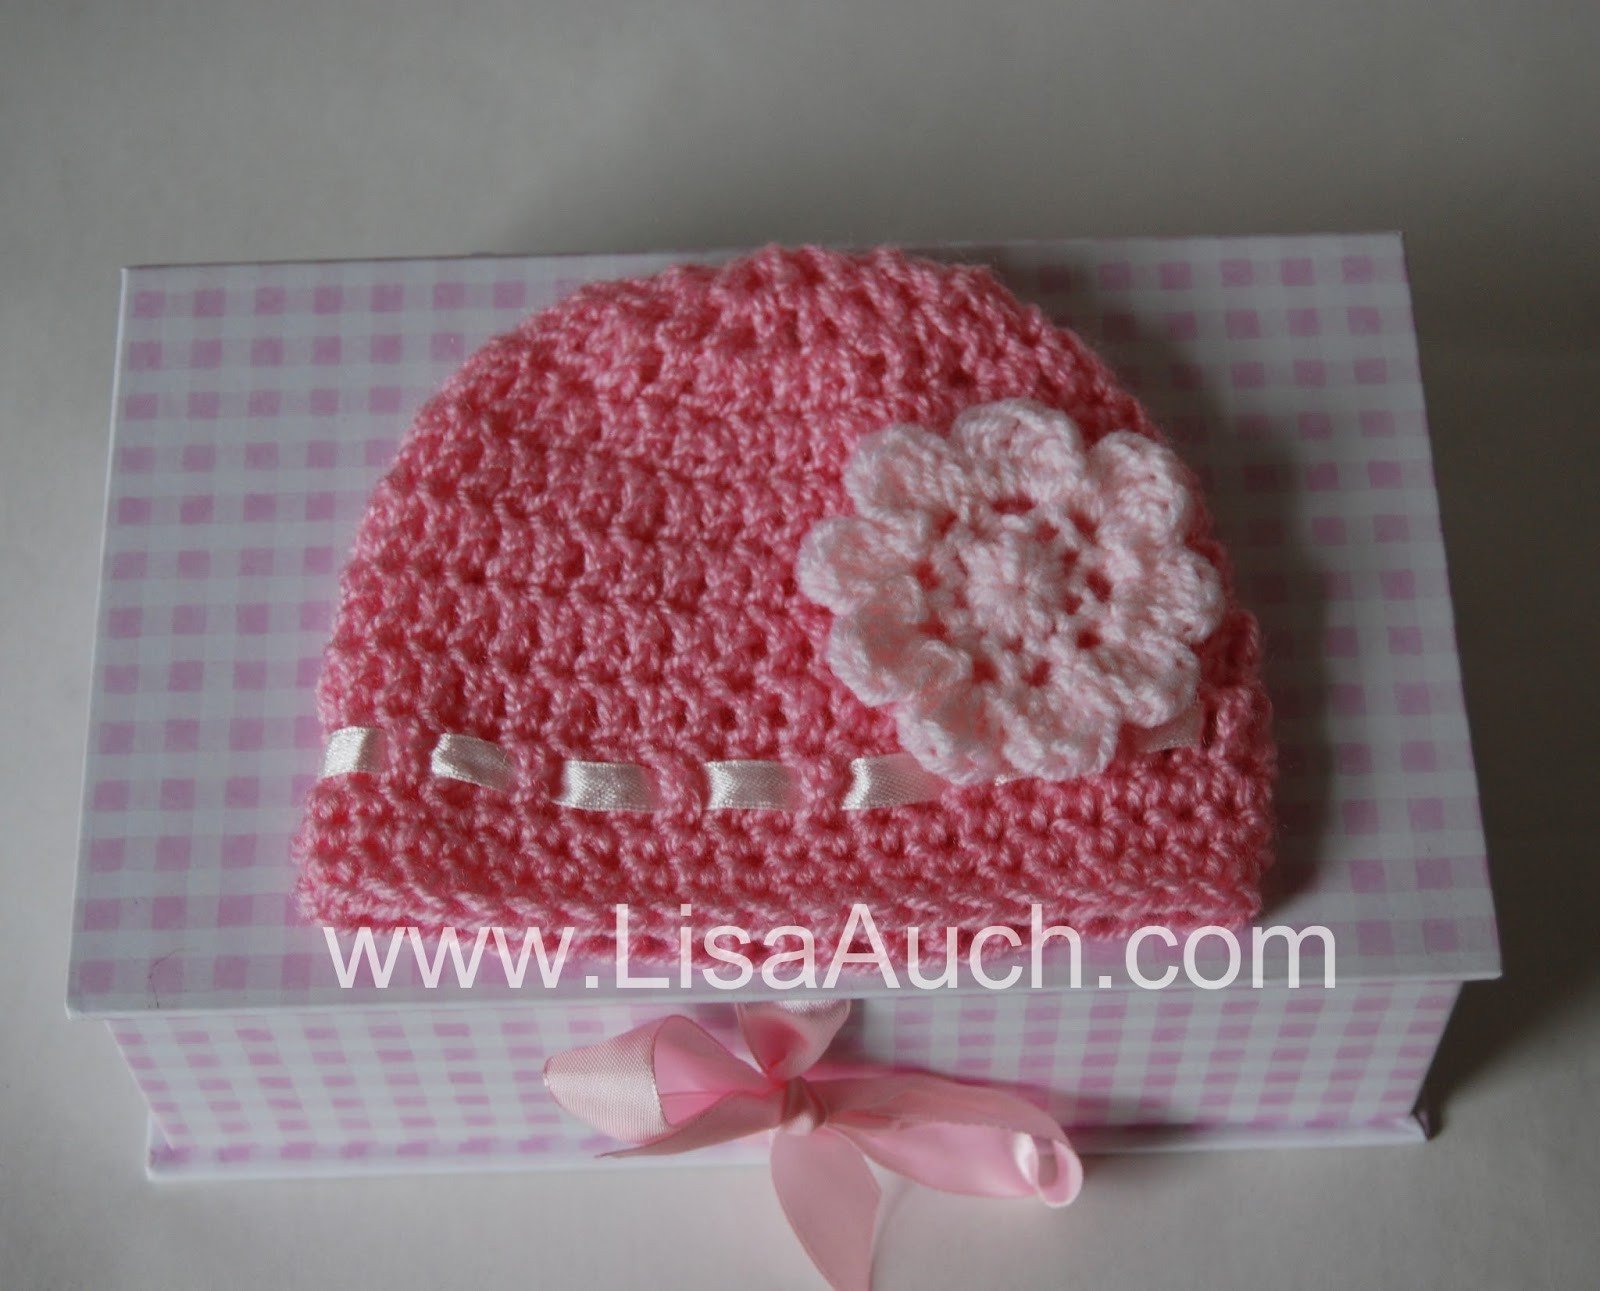 Crochet Stitches Baby Hats : baby+beanie-free-crochet-hat-pattern-baby-girl.JPG